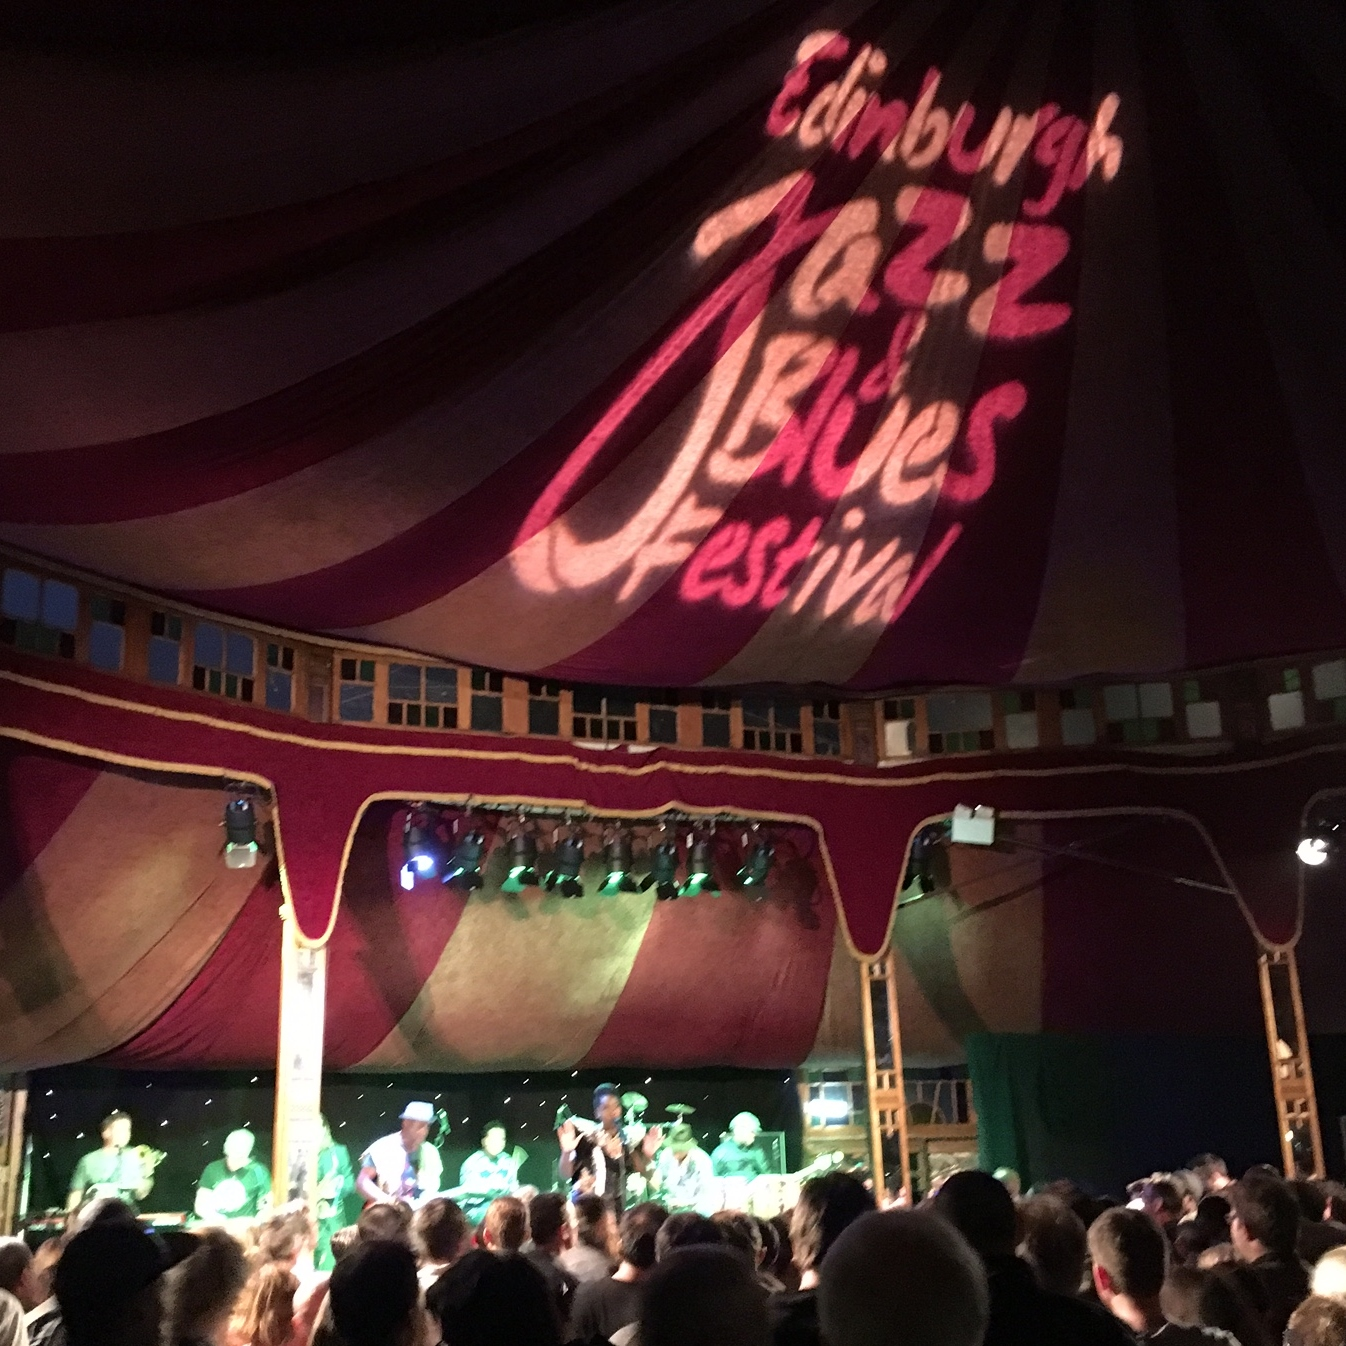 Ibibio Sound Machine Edinburgh Jazz Festival